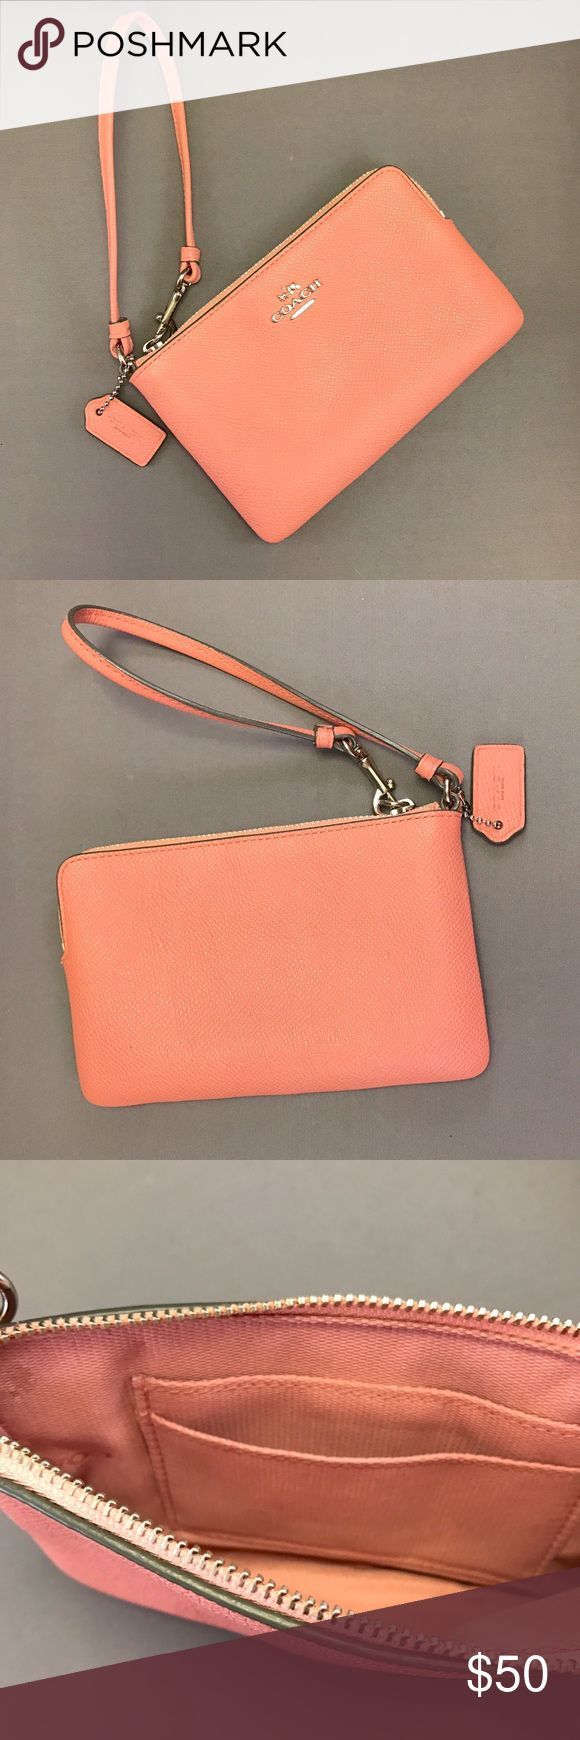 """Pink Coach Wristlet! Pink Coach Wristlet! Inside has a two spots for cards & id. Length: 6"""" Height: 4"""". (Bundle 3 items & Save with my Discount!) Coach Bags Clutches & Wristlets"""